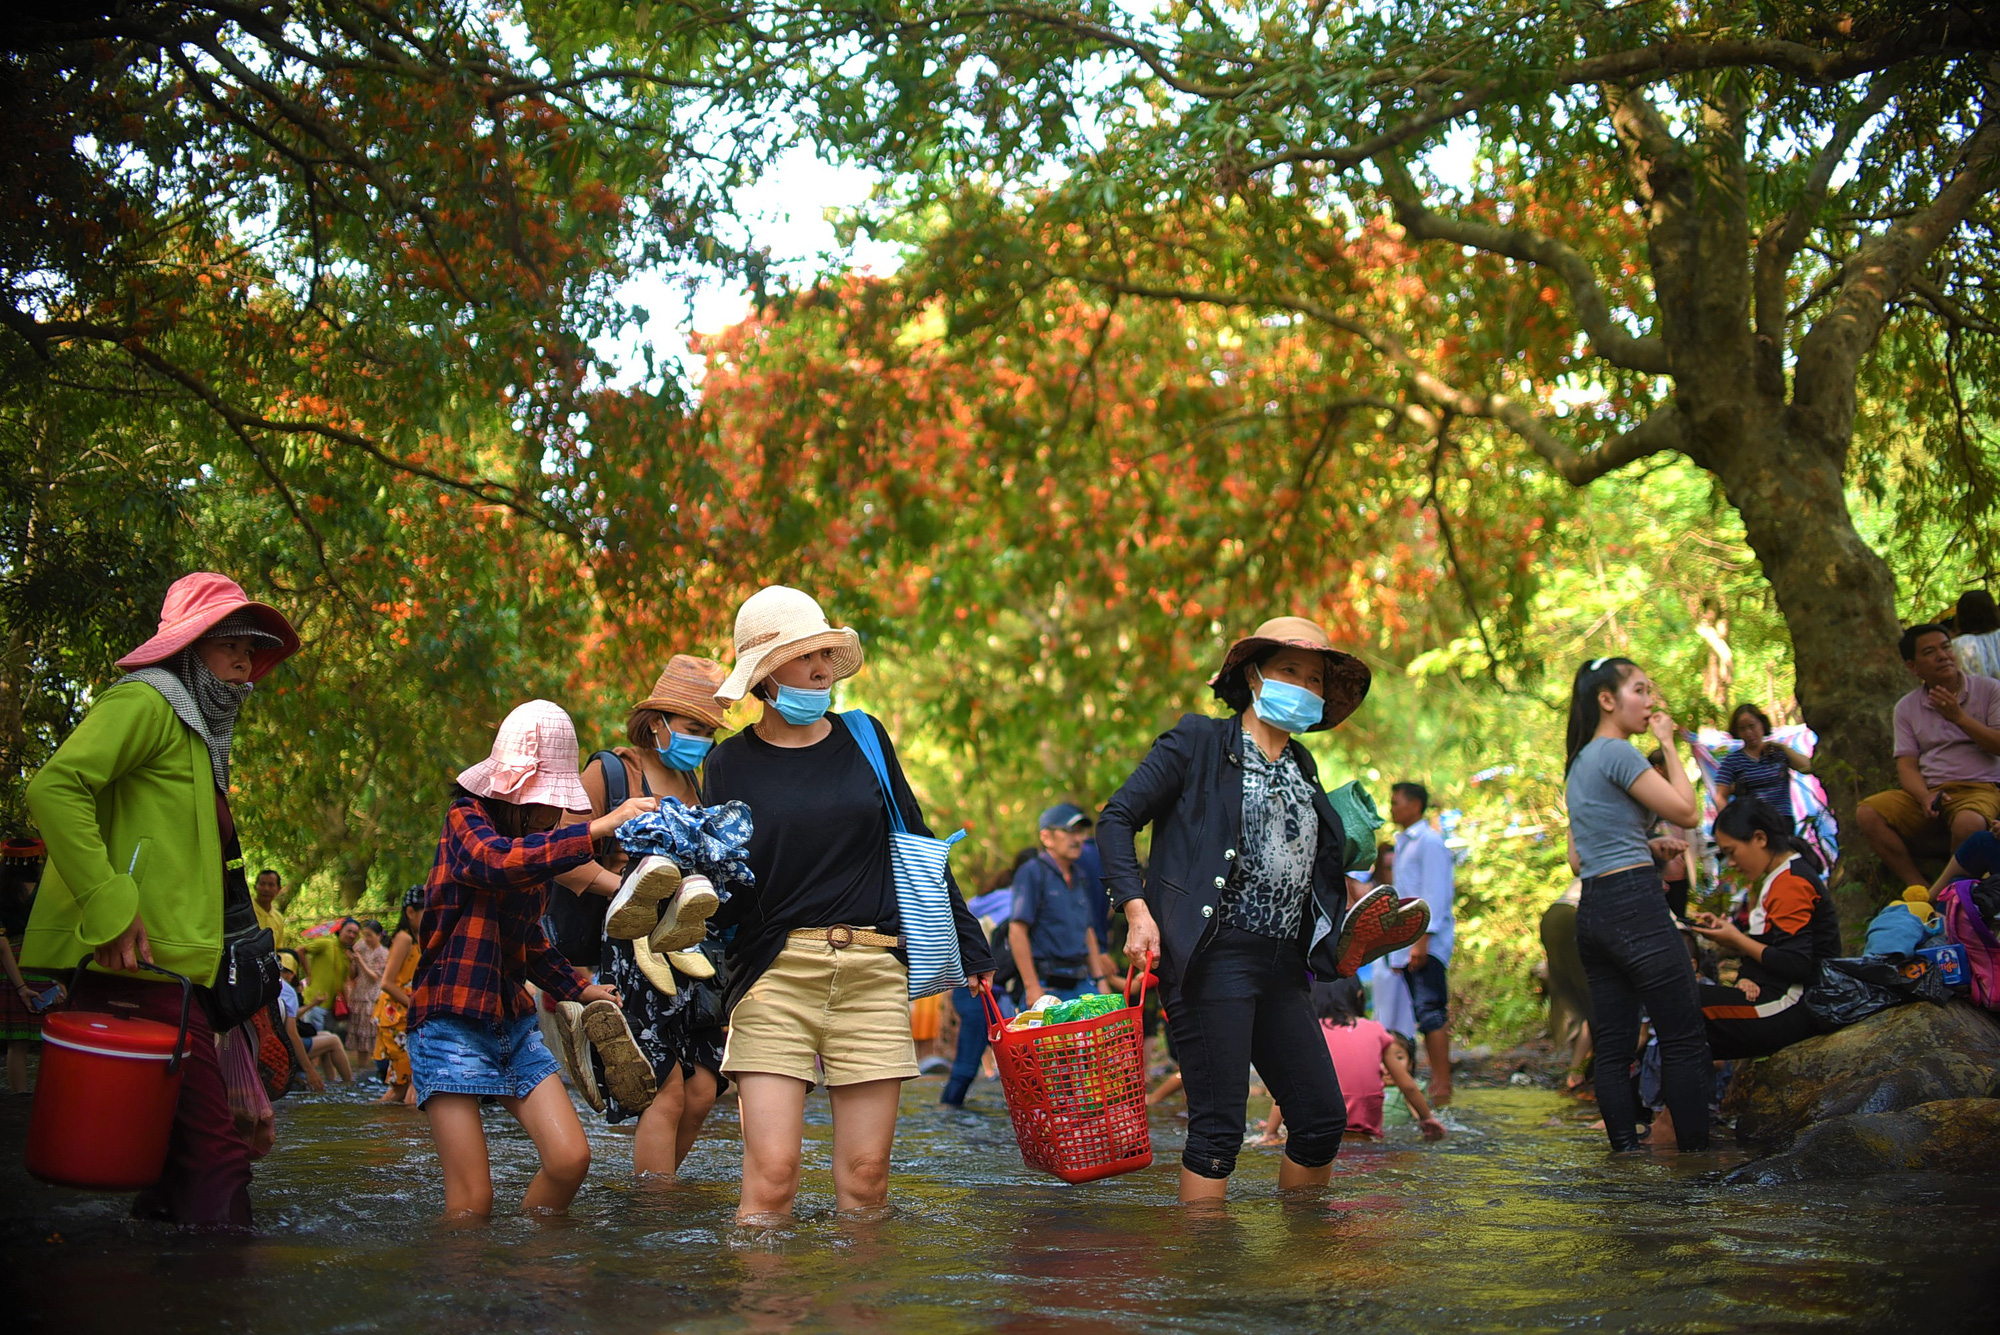 Visitors are seen at Ta Ma spring at Vinh Hiep Commune in Vinh Thanh District, Binh Dinh central province. Photo: Lam Thien / Tuoi Tre